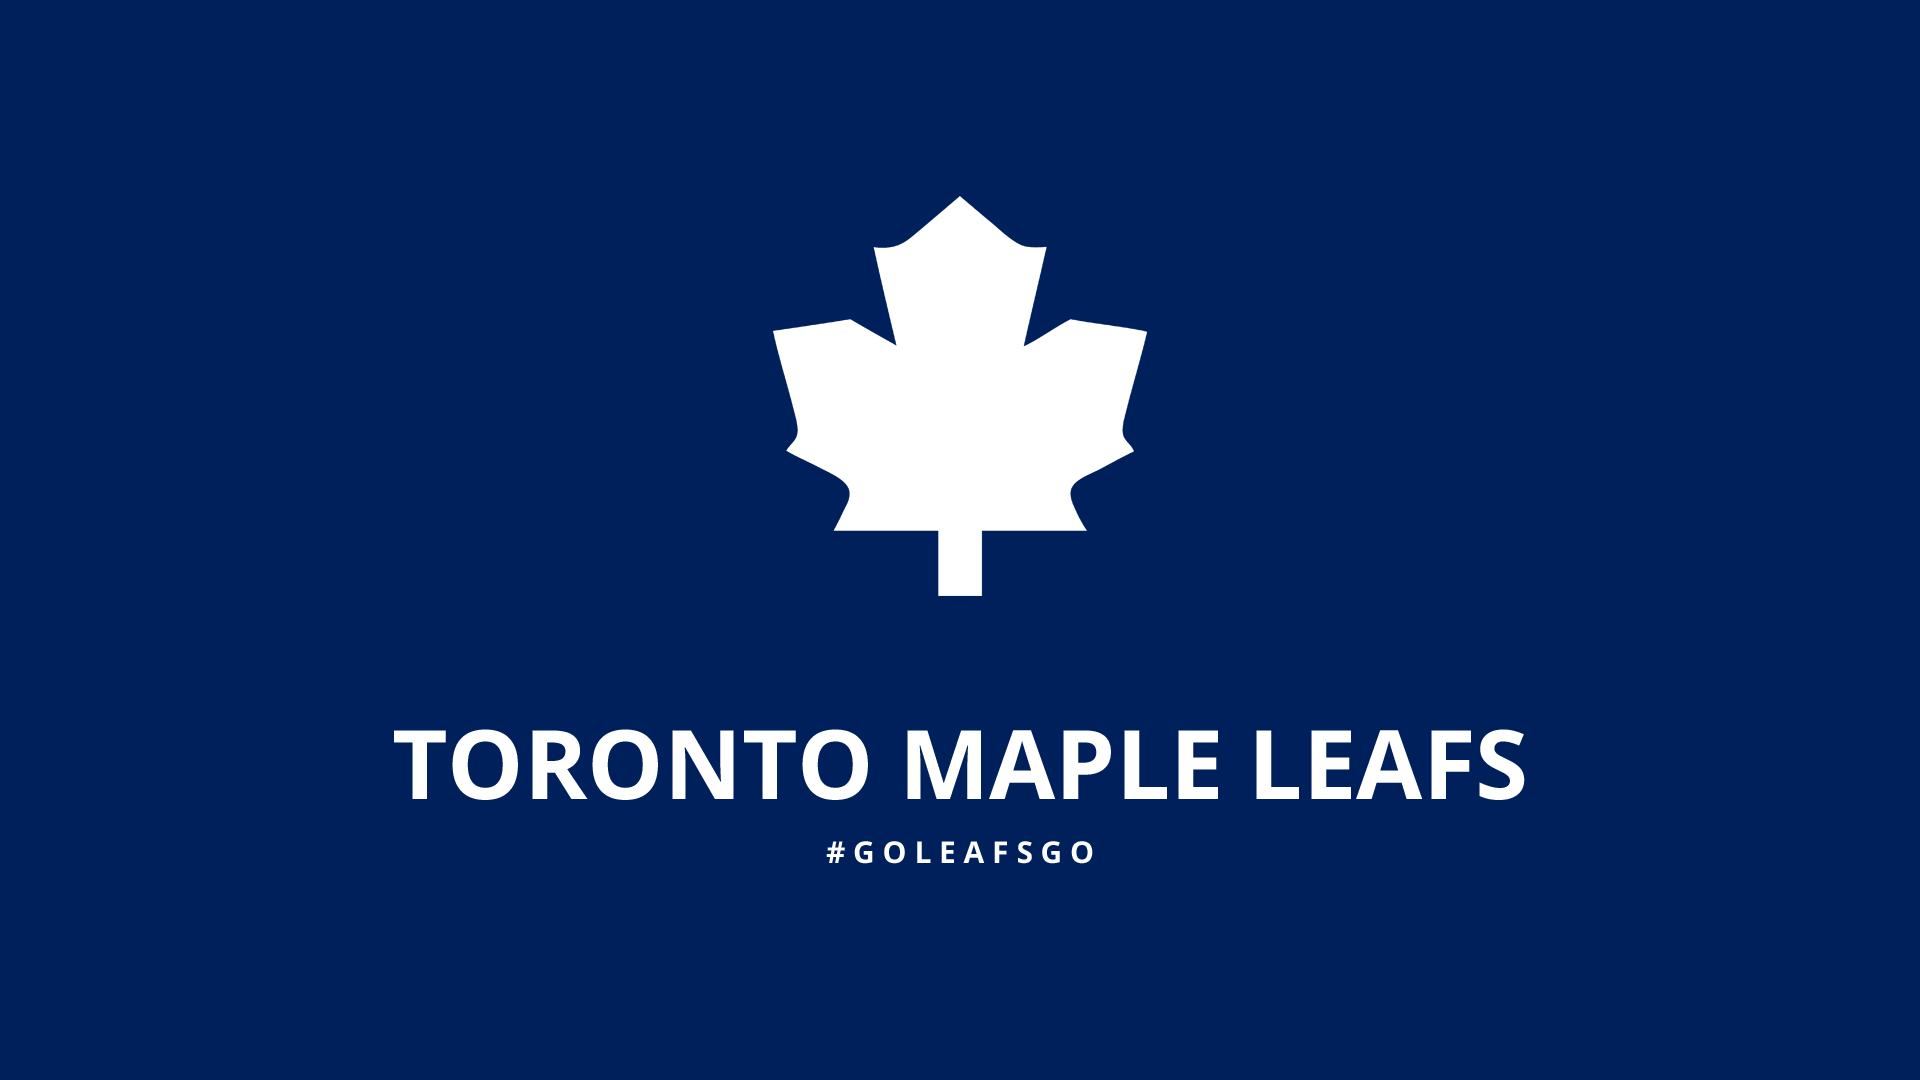 Toronto Maple Leafs Wallpapers 2015